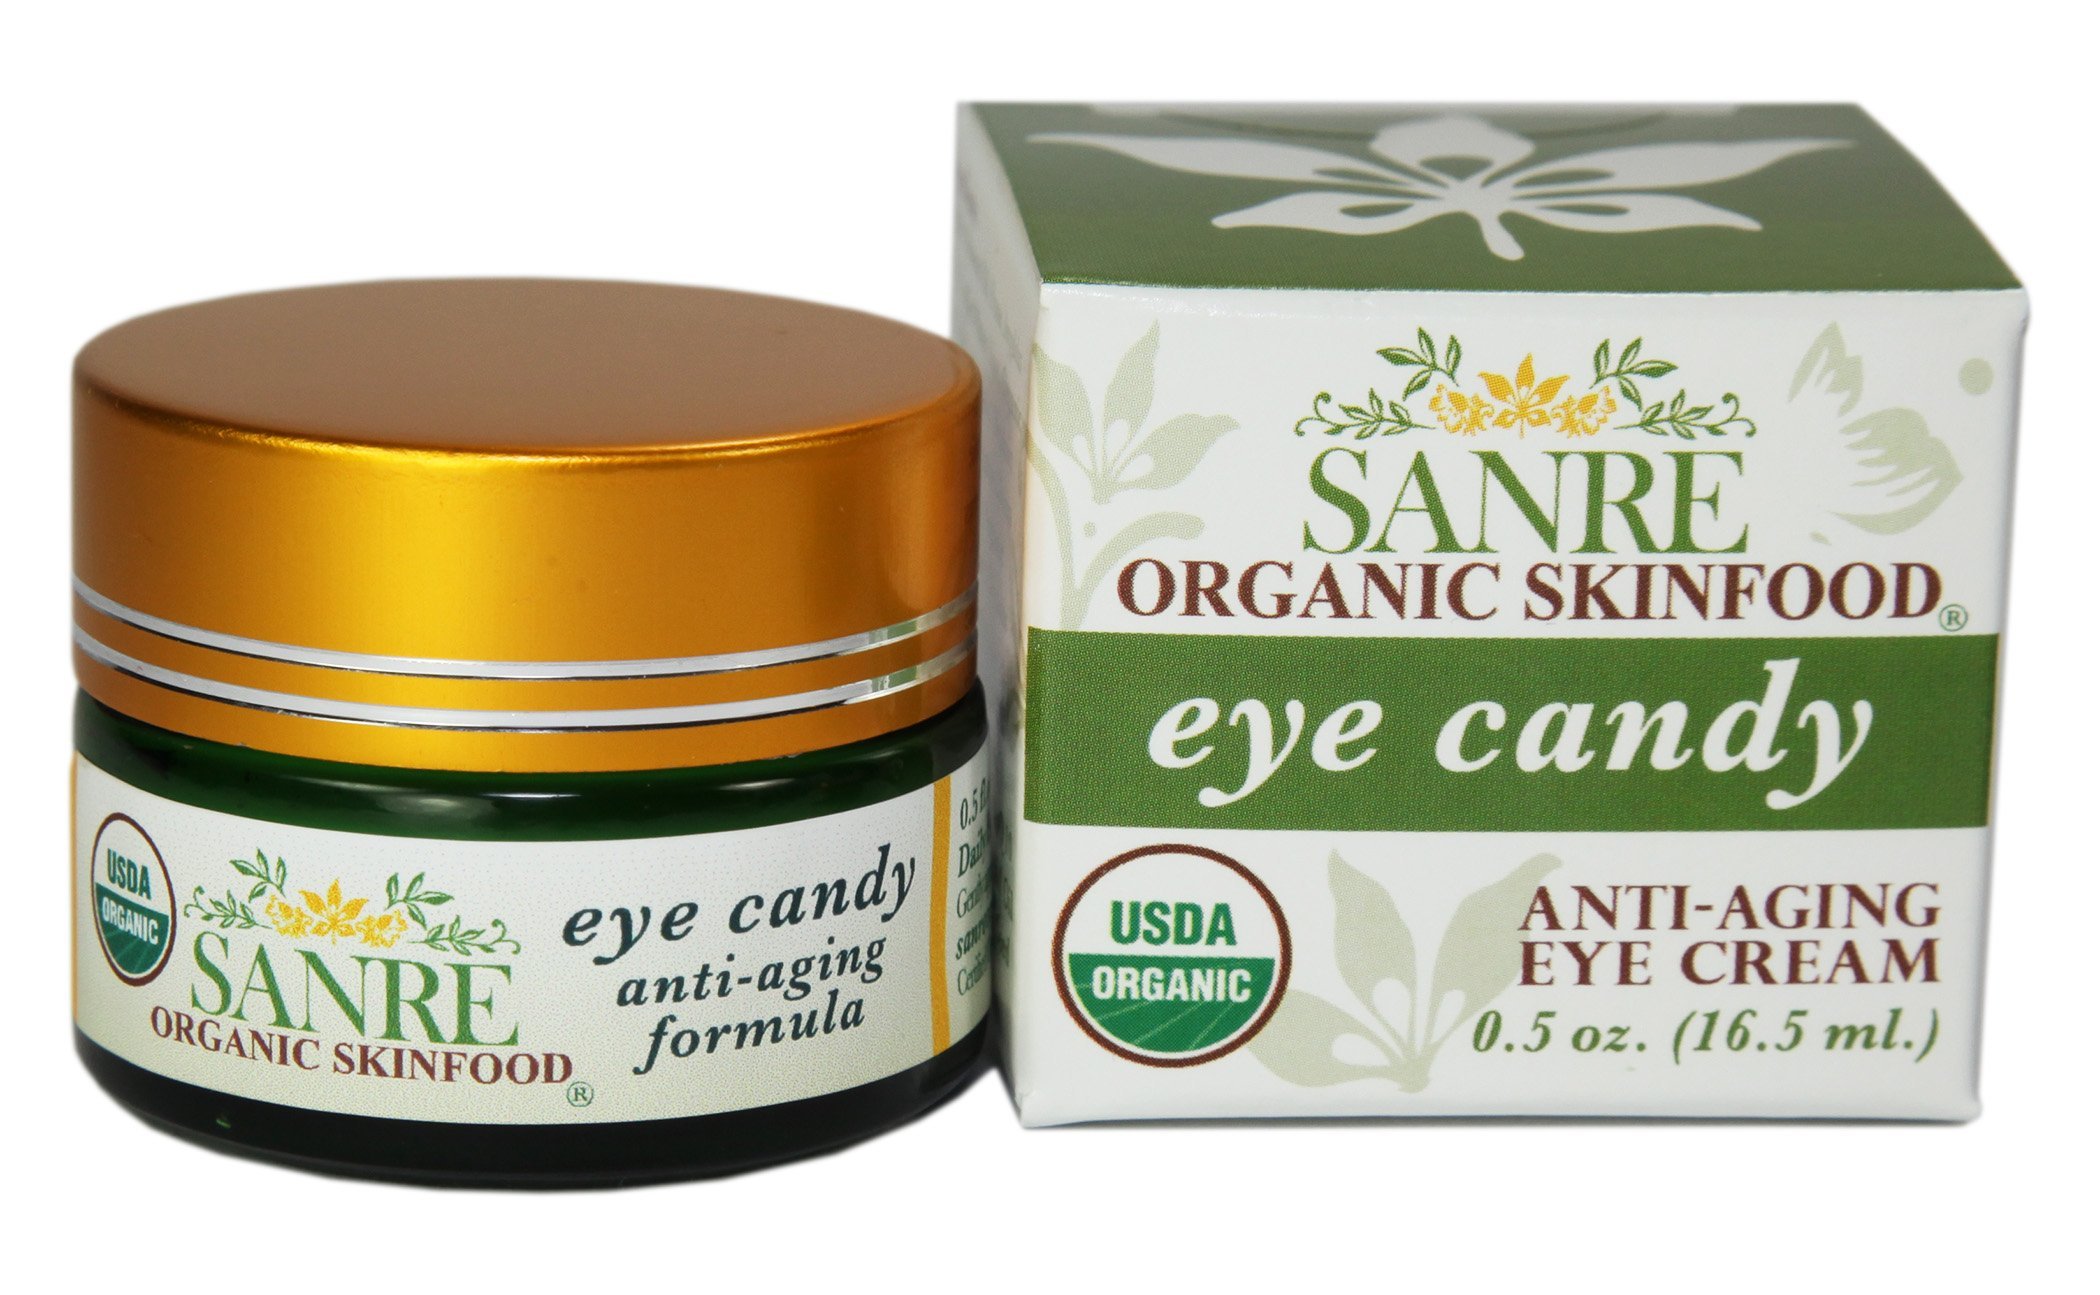 Lavender Dream Antioxidant & Firming Night Cream - 1.1 oz. by SanRe Organic Skinfood (pack of 3) Natures Beauty Works Sensitive Skin Make Up Remover Towelettes, 30 Ea, 2 Pack